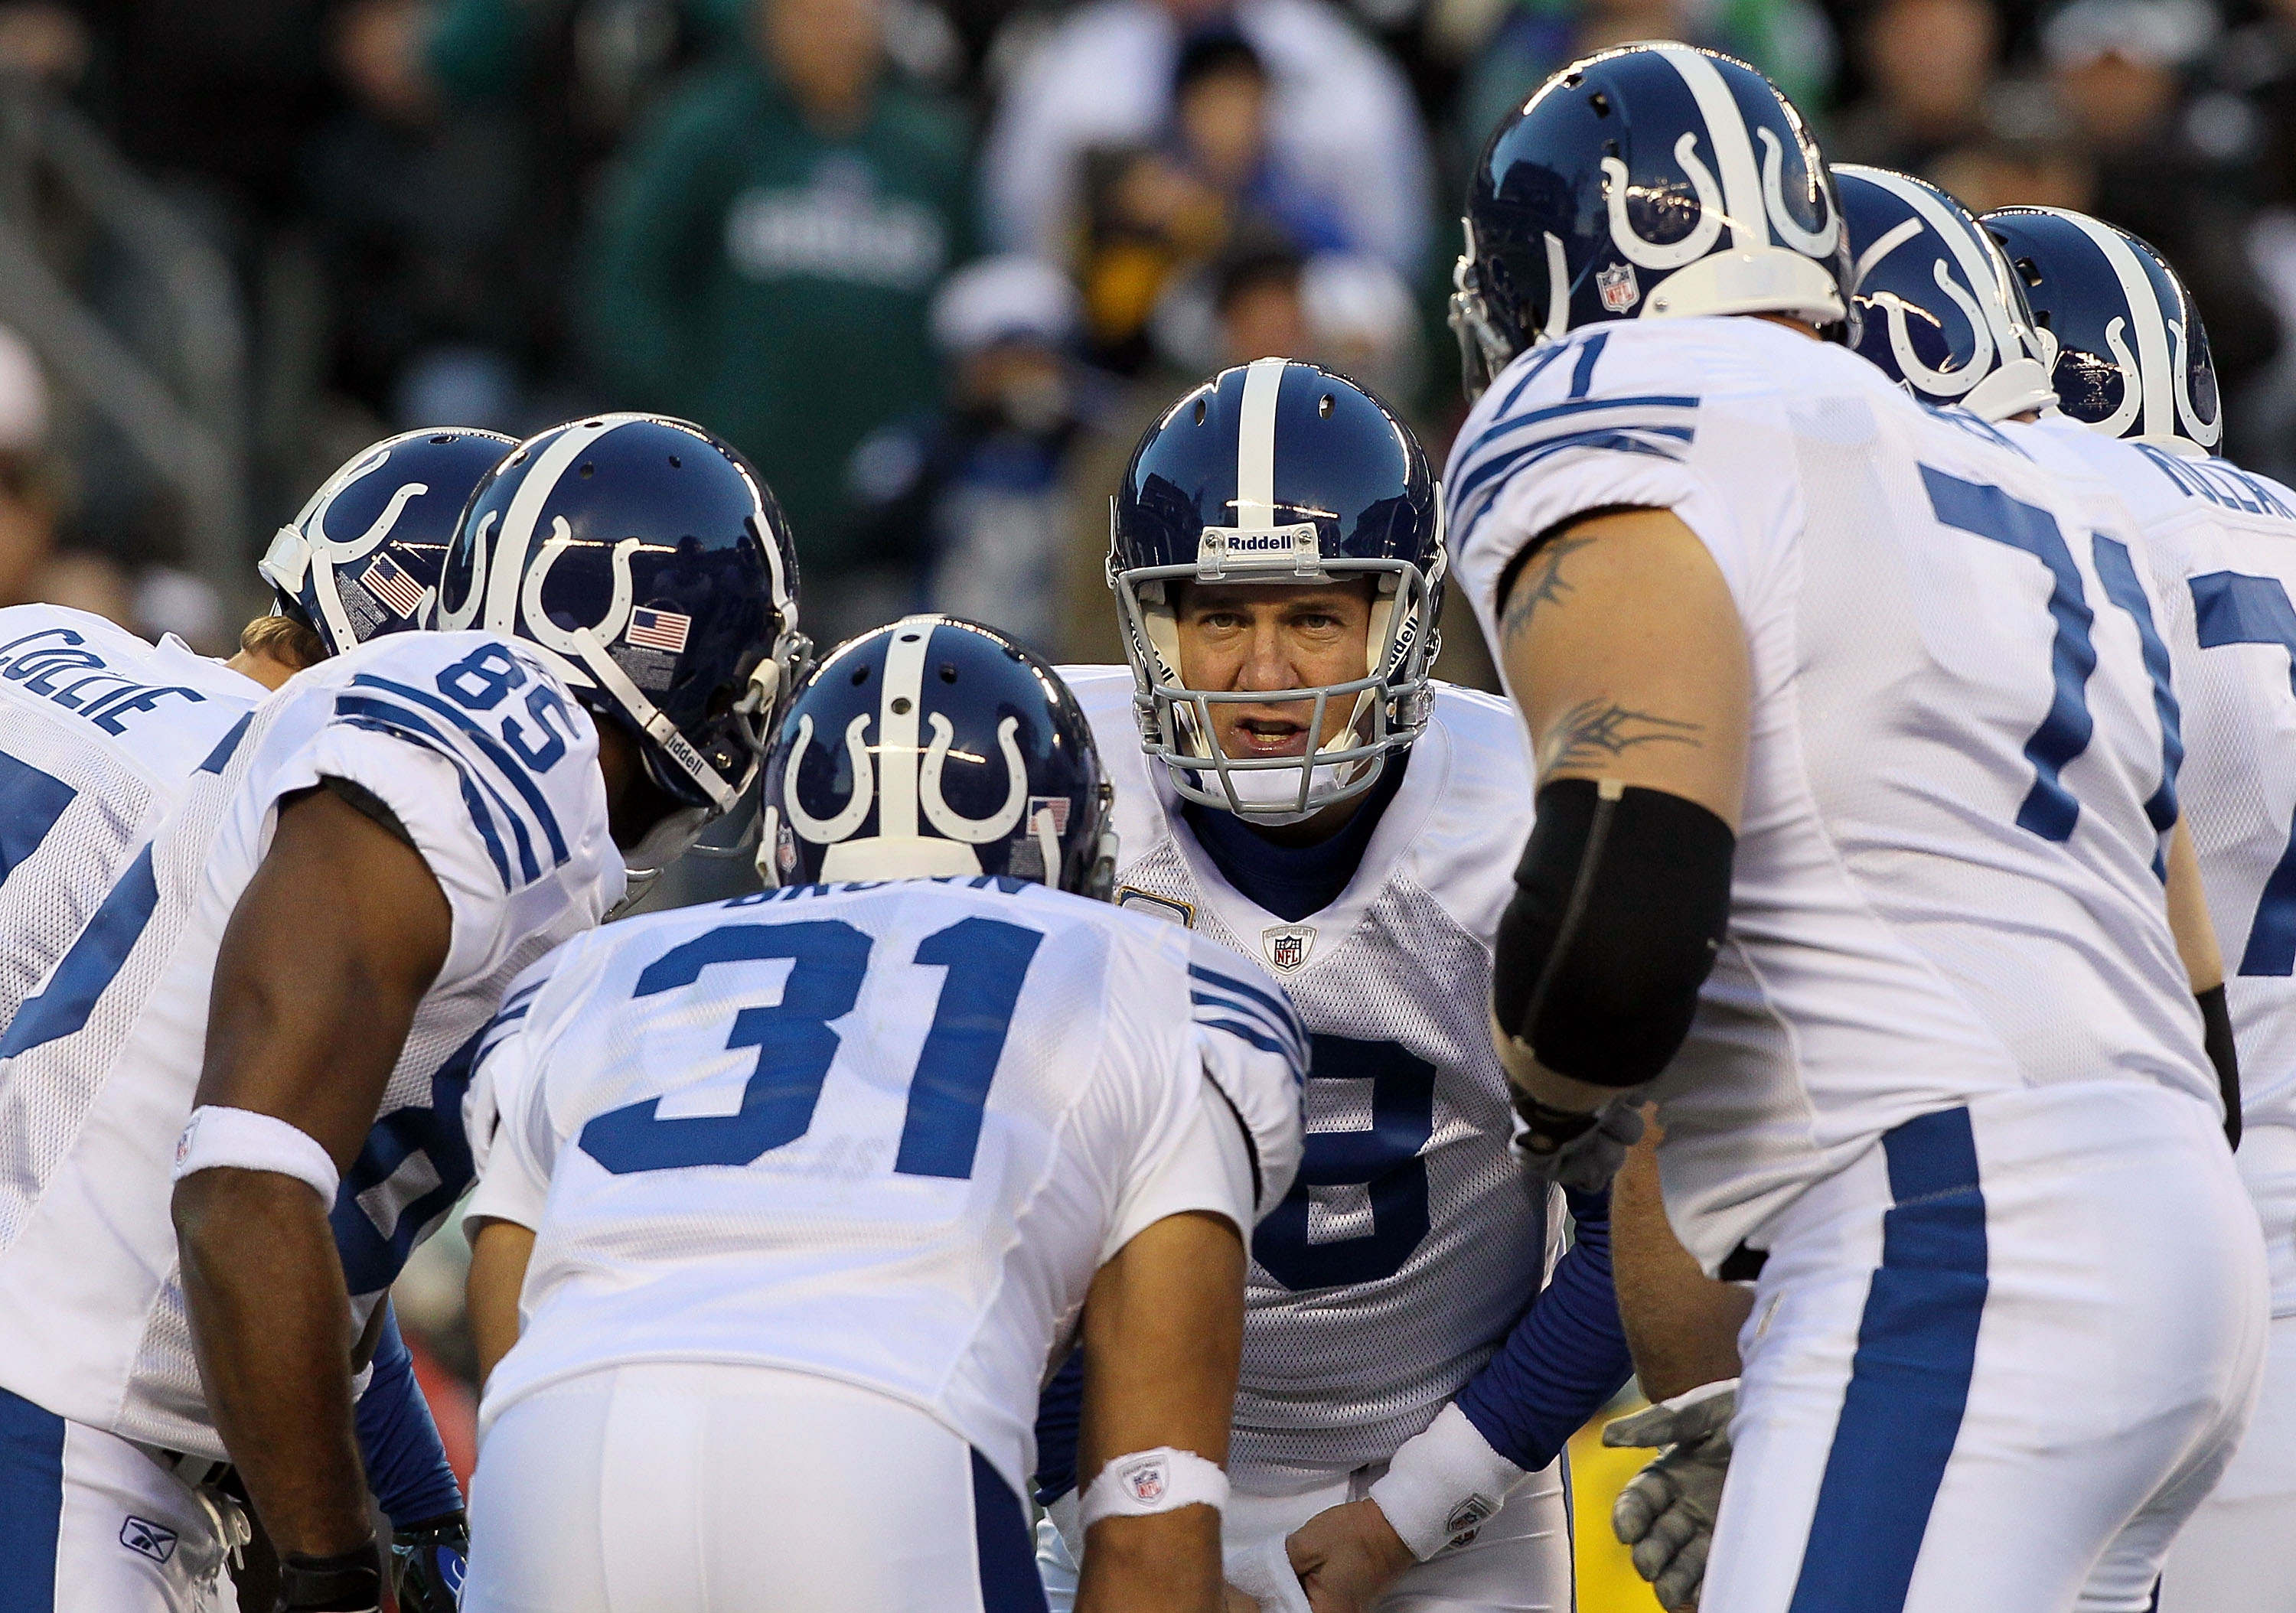 PHILADELPHIA - NOVEMBER 07:  Peyton Manning #18 of the Indianapolis Colts huddles with his team against the Philadelphia Eagles on November 7, 2010 at Lincoln Financial Field in Philadelphia, Pennsylvania.  (Photo by Jim McIsaac/Getty Images)